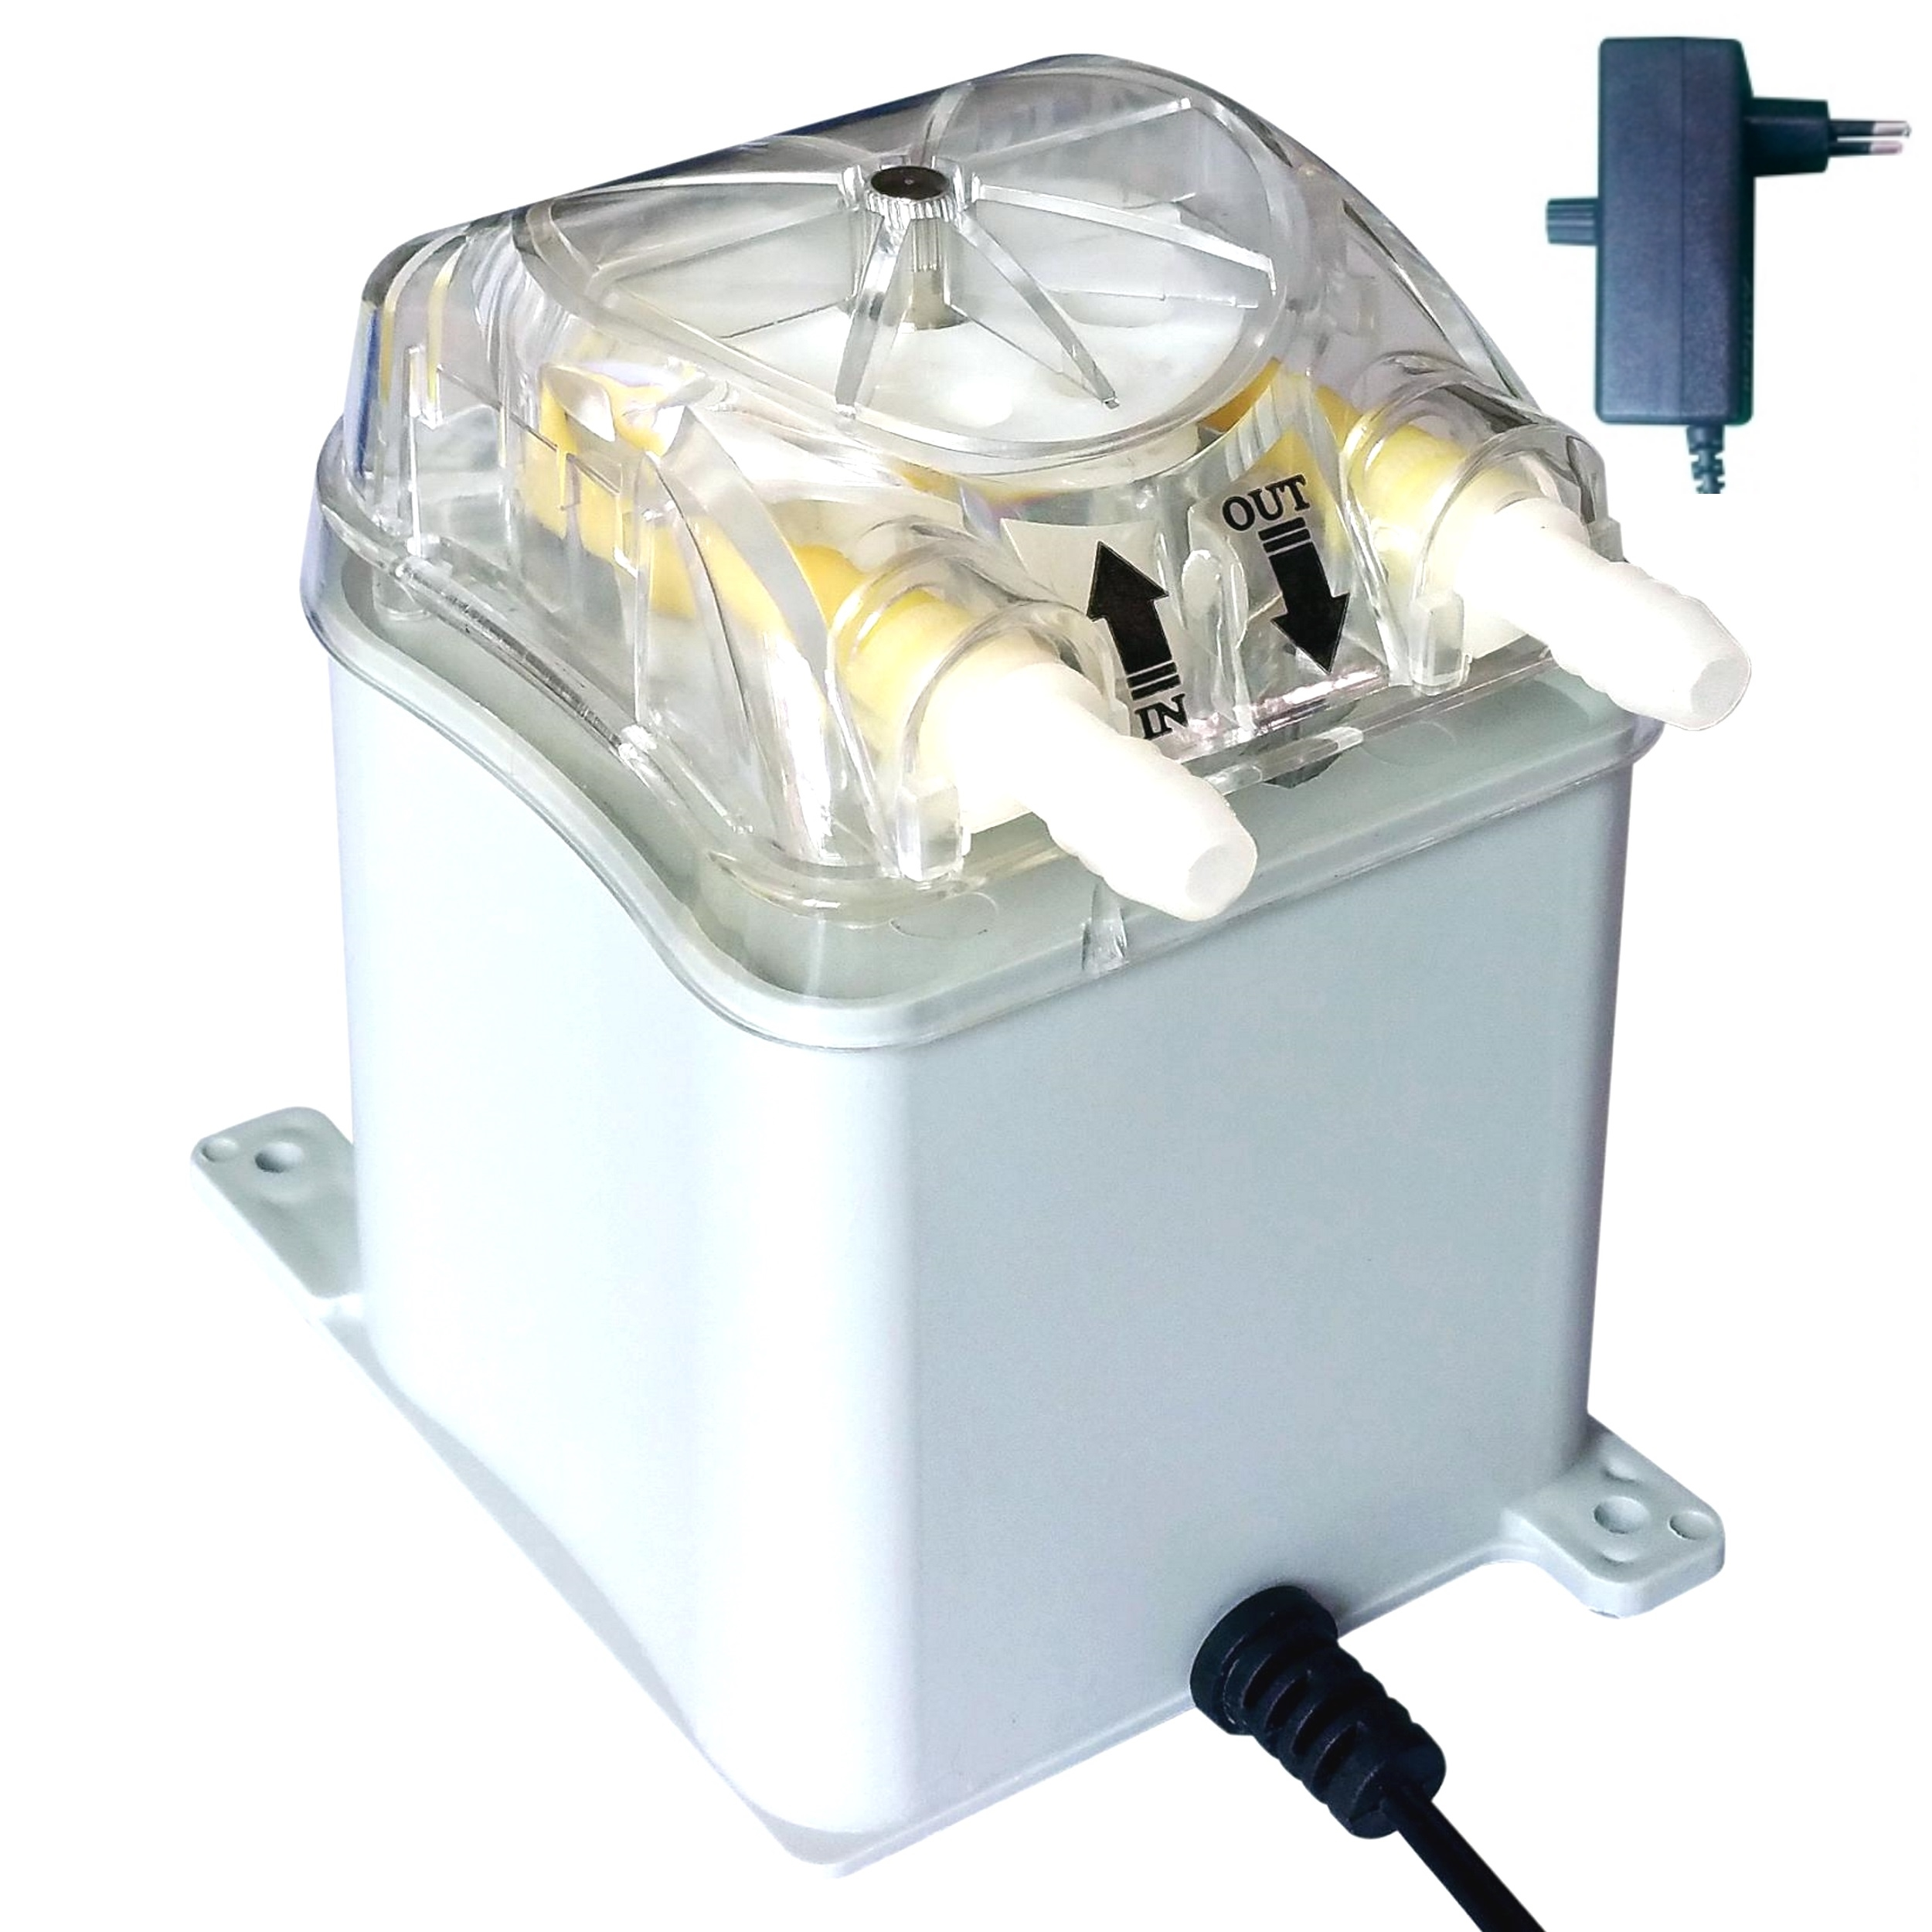 1000ml/min, 30psi, 230Vac Honlite Peristaltic Pump With Exchangeable Pump Head, PharMed BPT Peristaltic Tube And Transformer